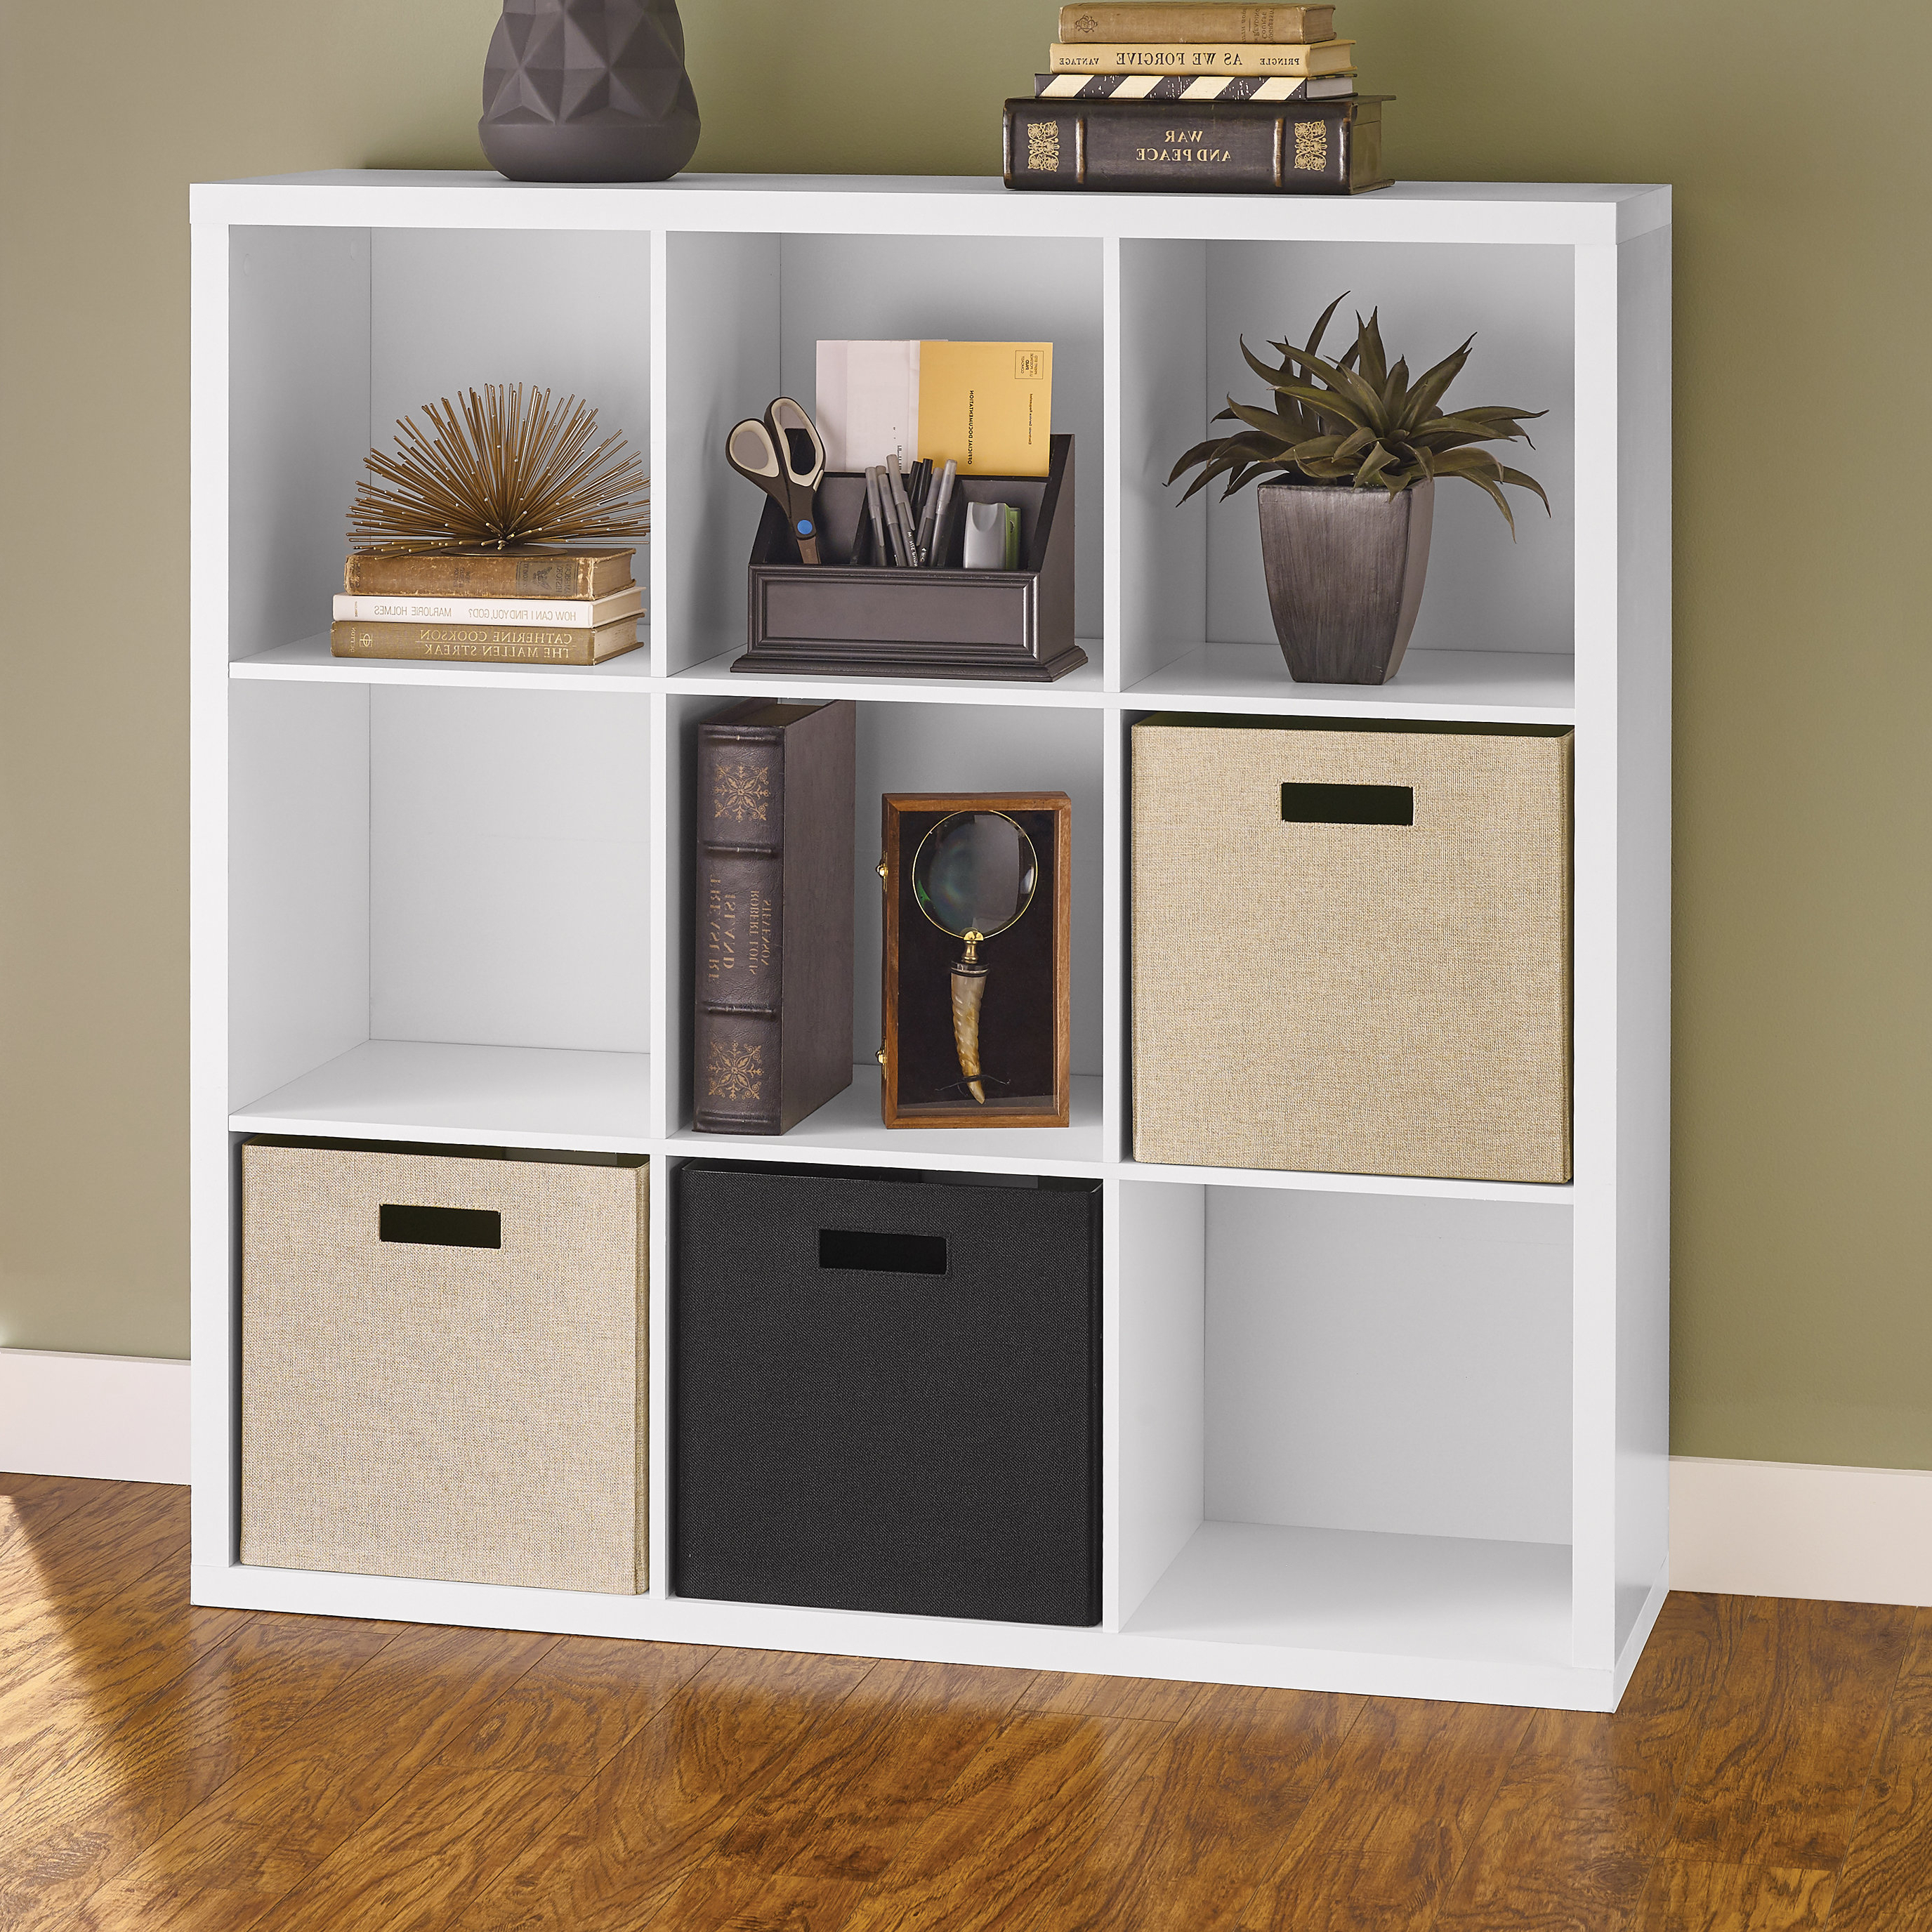 2020 Decorative Storage Cube Bookcases Inside Closetmaid Decorative Storage Cube Bookcase & Reviews (Gallery 3 of 20)